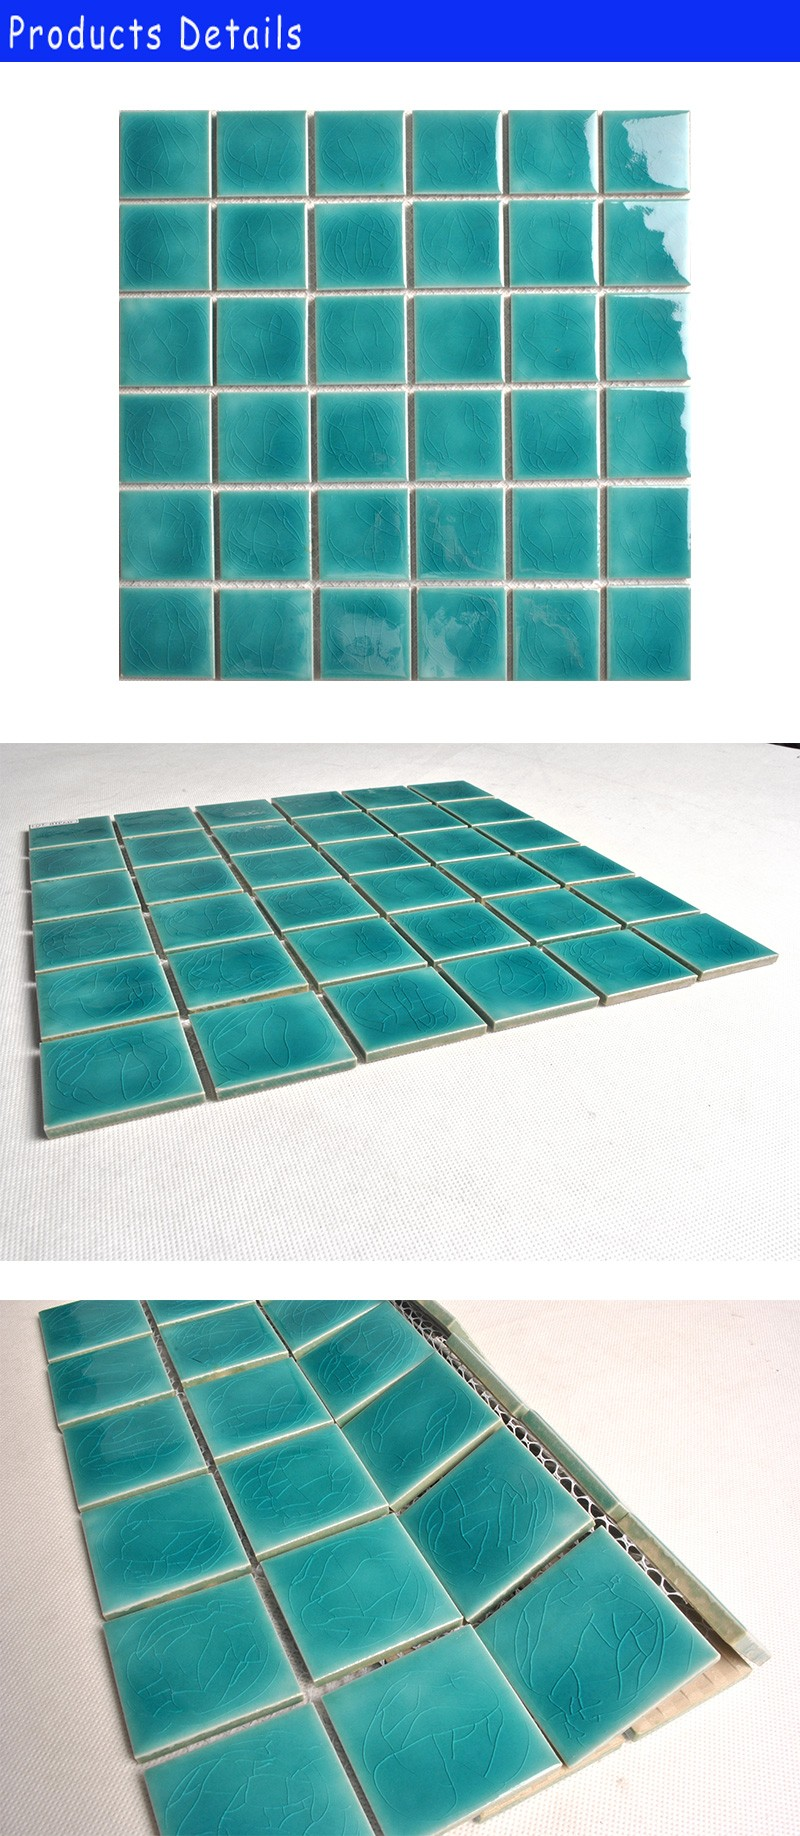 Hot Sale Double Ice Crackle Green Ceramic Mosaic Pool Tiles - Buy ...